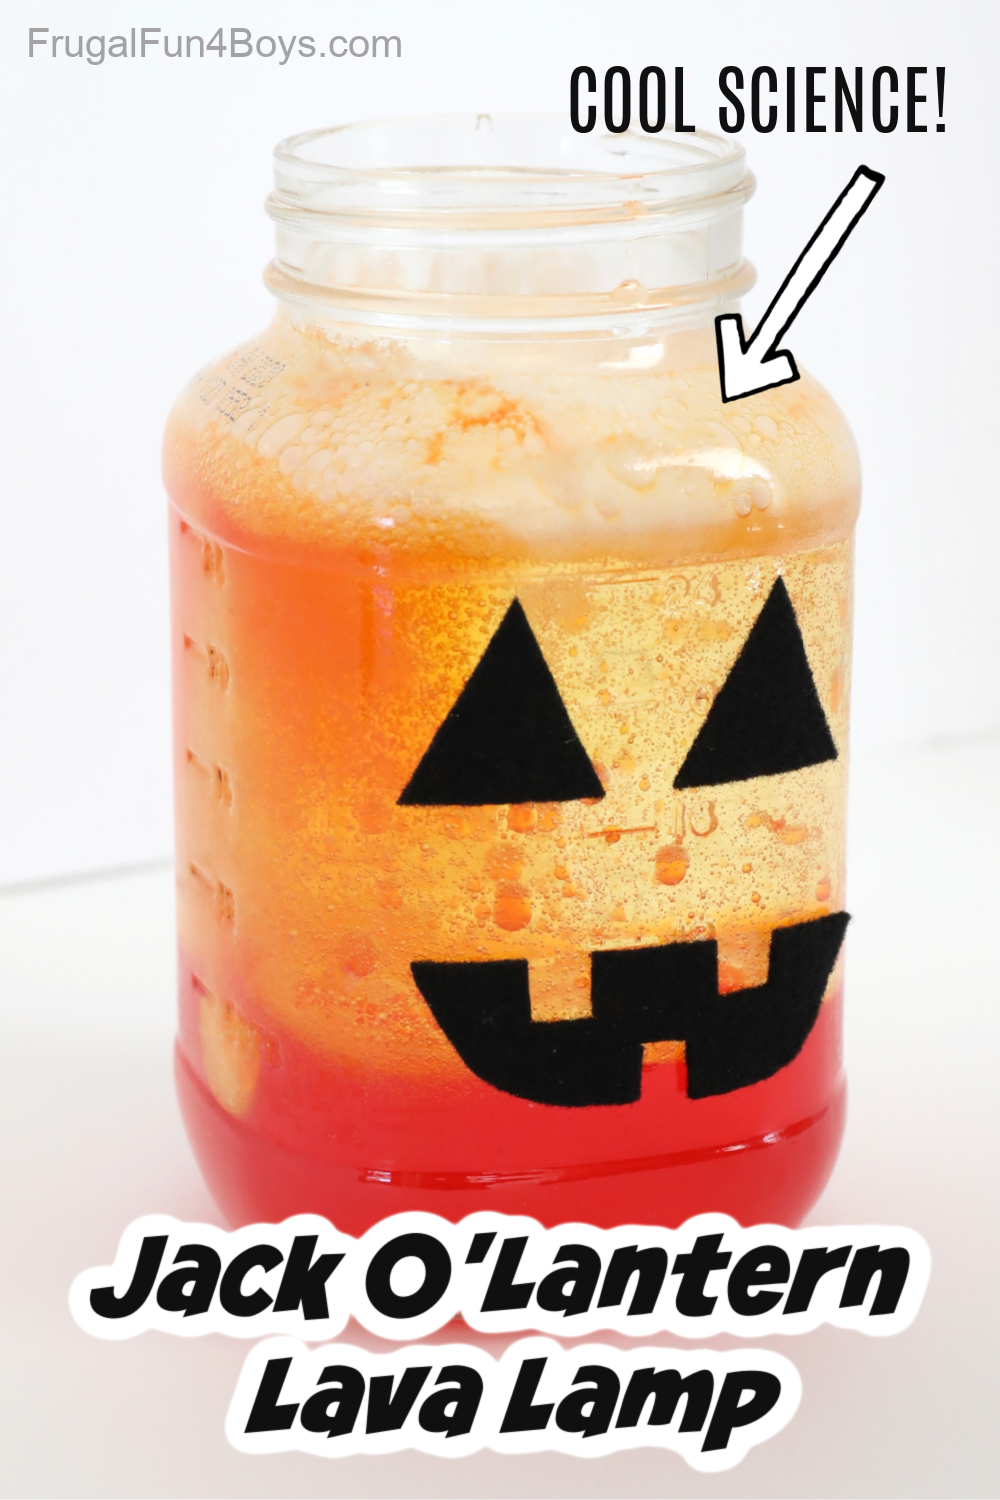 Jack O'Lantern Lava Lamp in a jar.